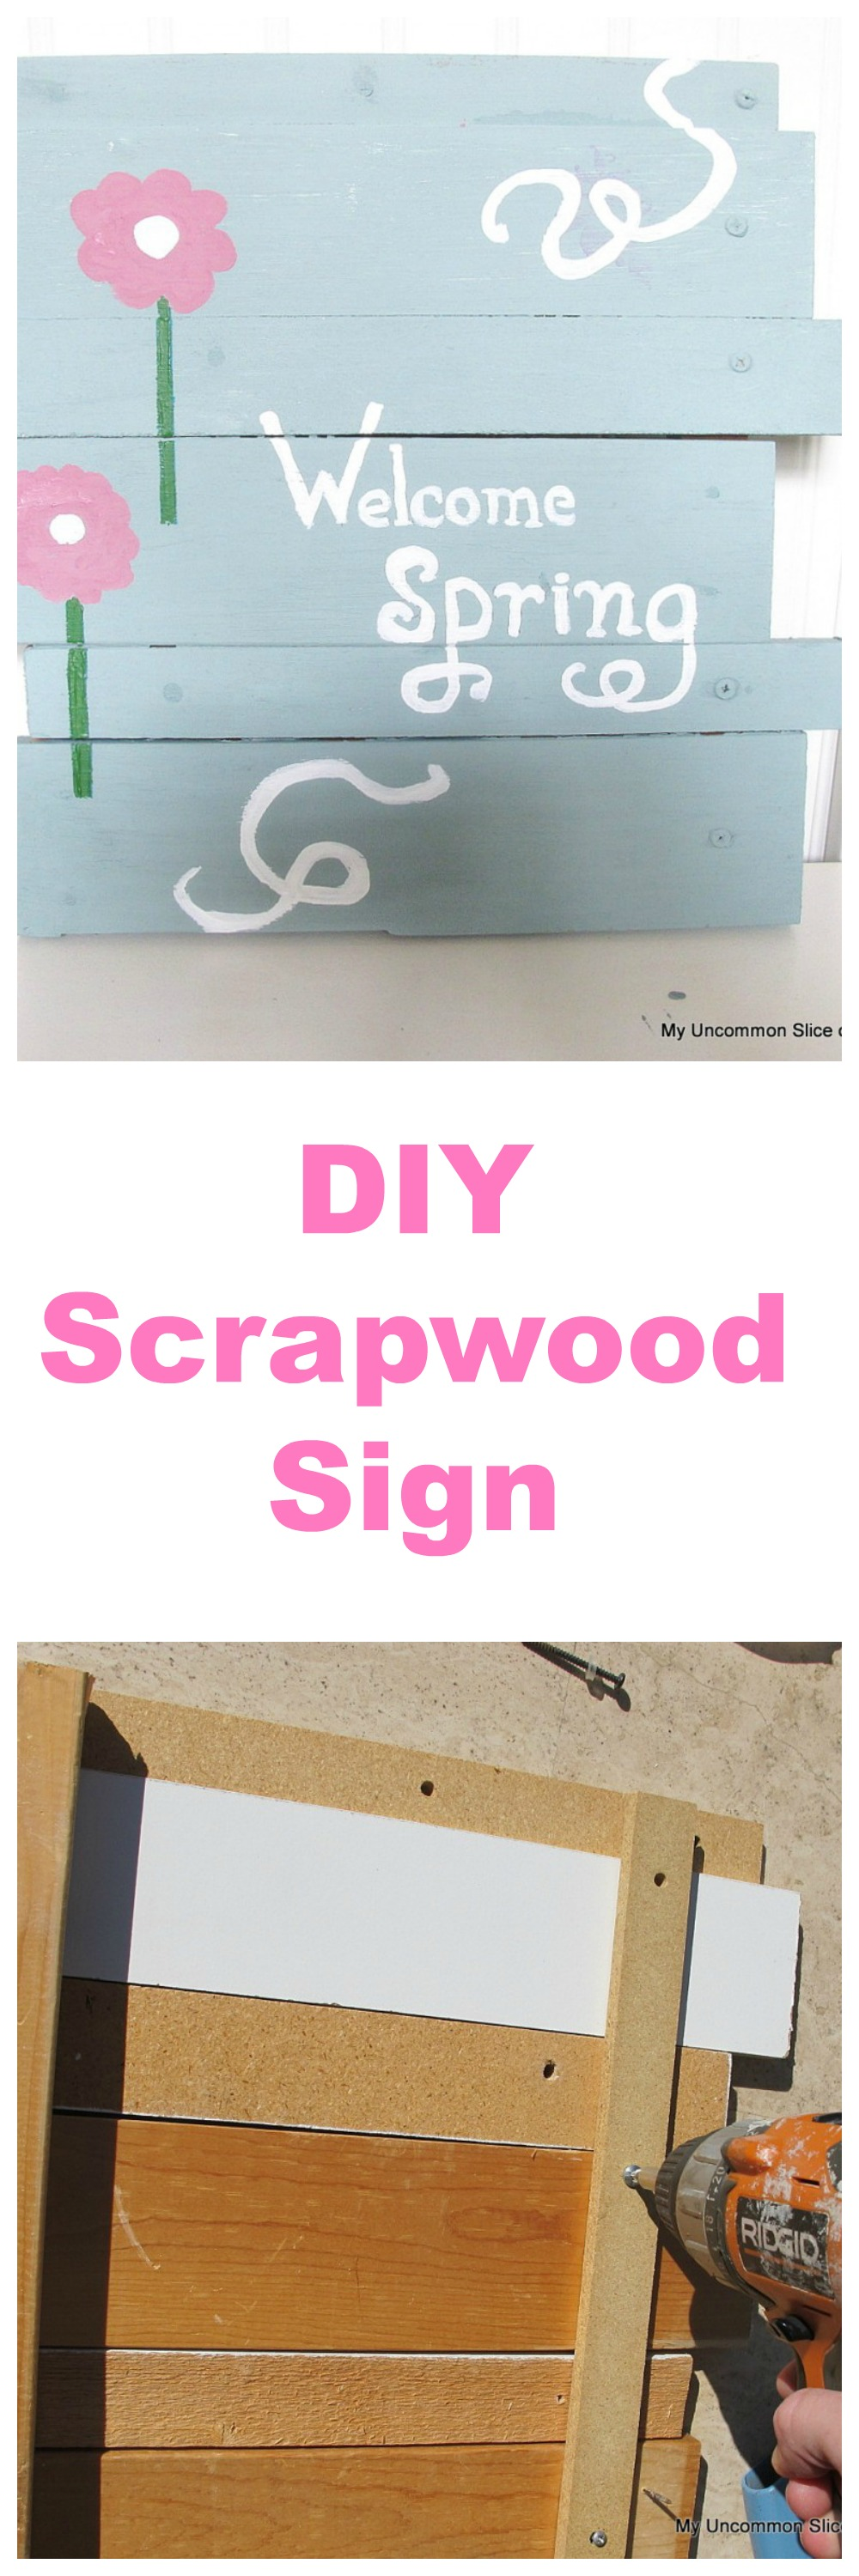 Take Scrapwood, add Paint and you have a welcome Spring Sign!